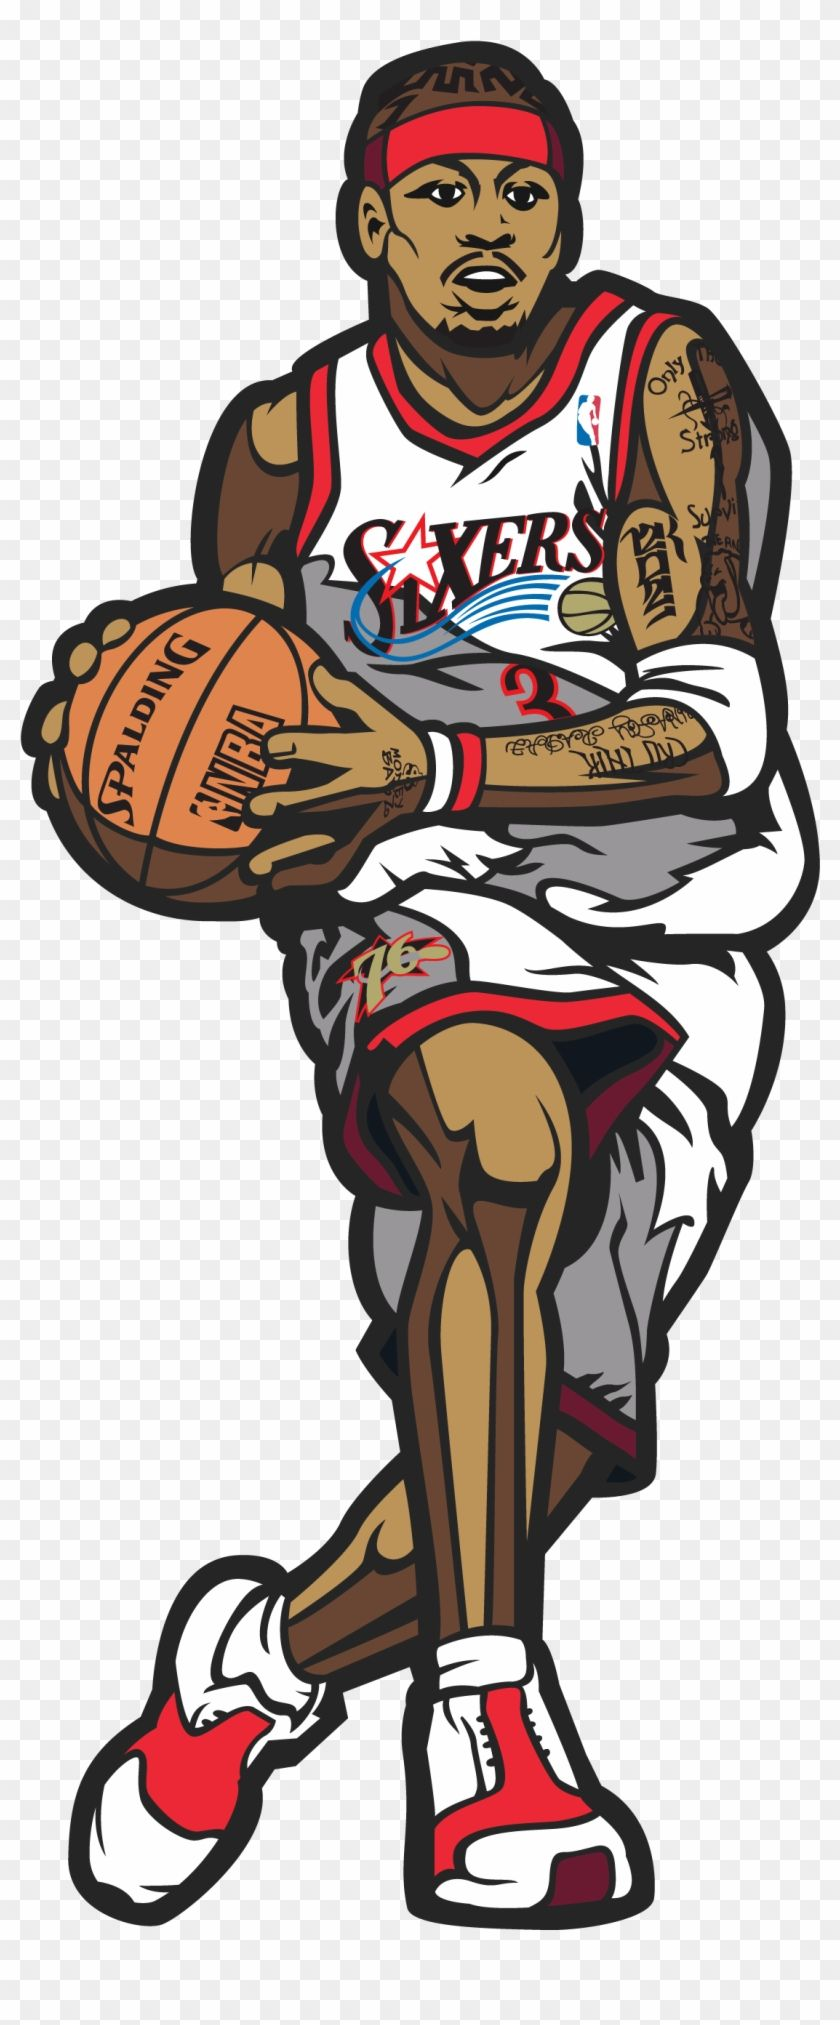 Find Hd Allen Iverson Clip Art Png Download Transparent Png To Search And Download More Free Trans Allen Iverson Allen Iverson Wallpapers Iverson Wallpaper